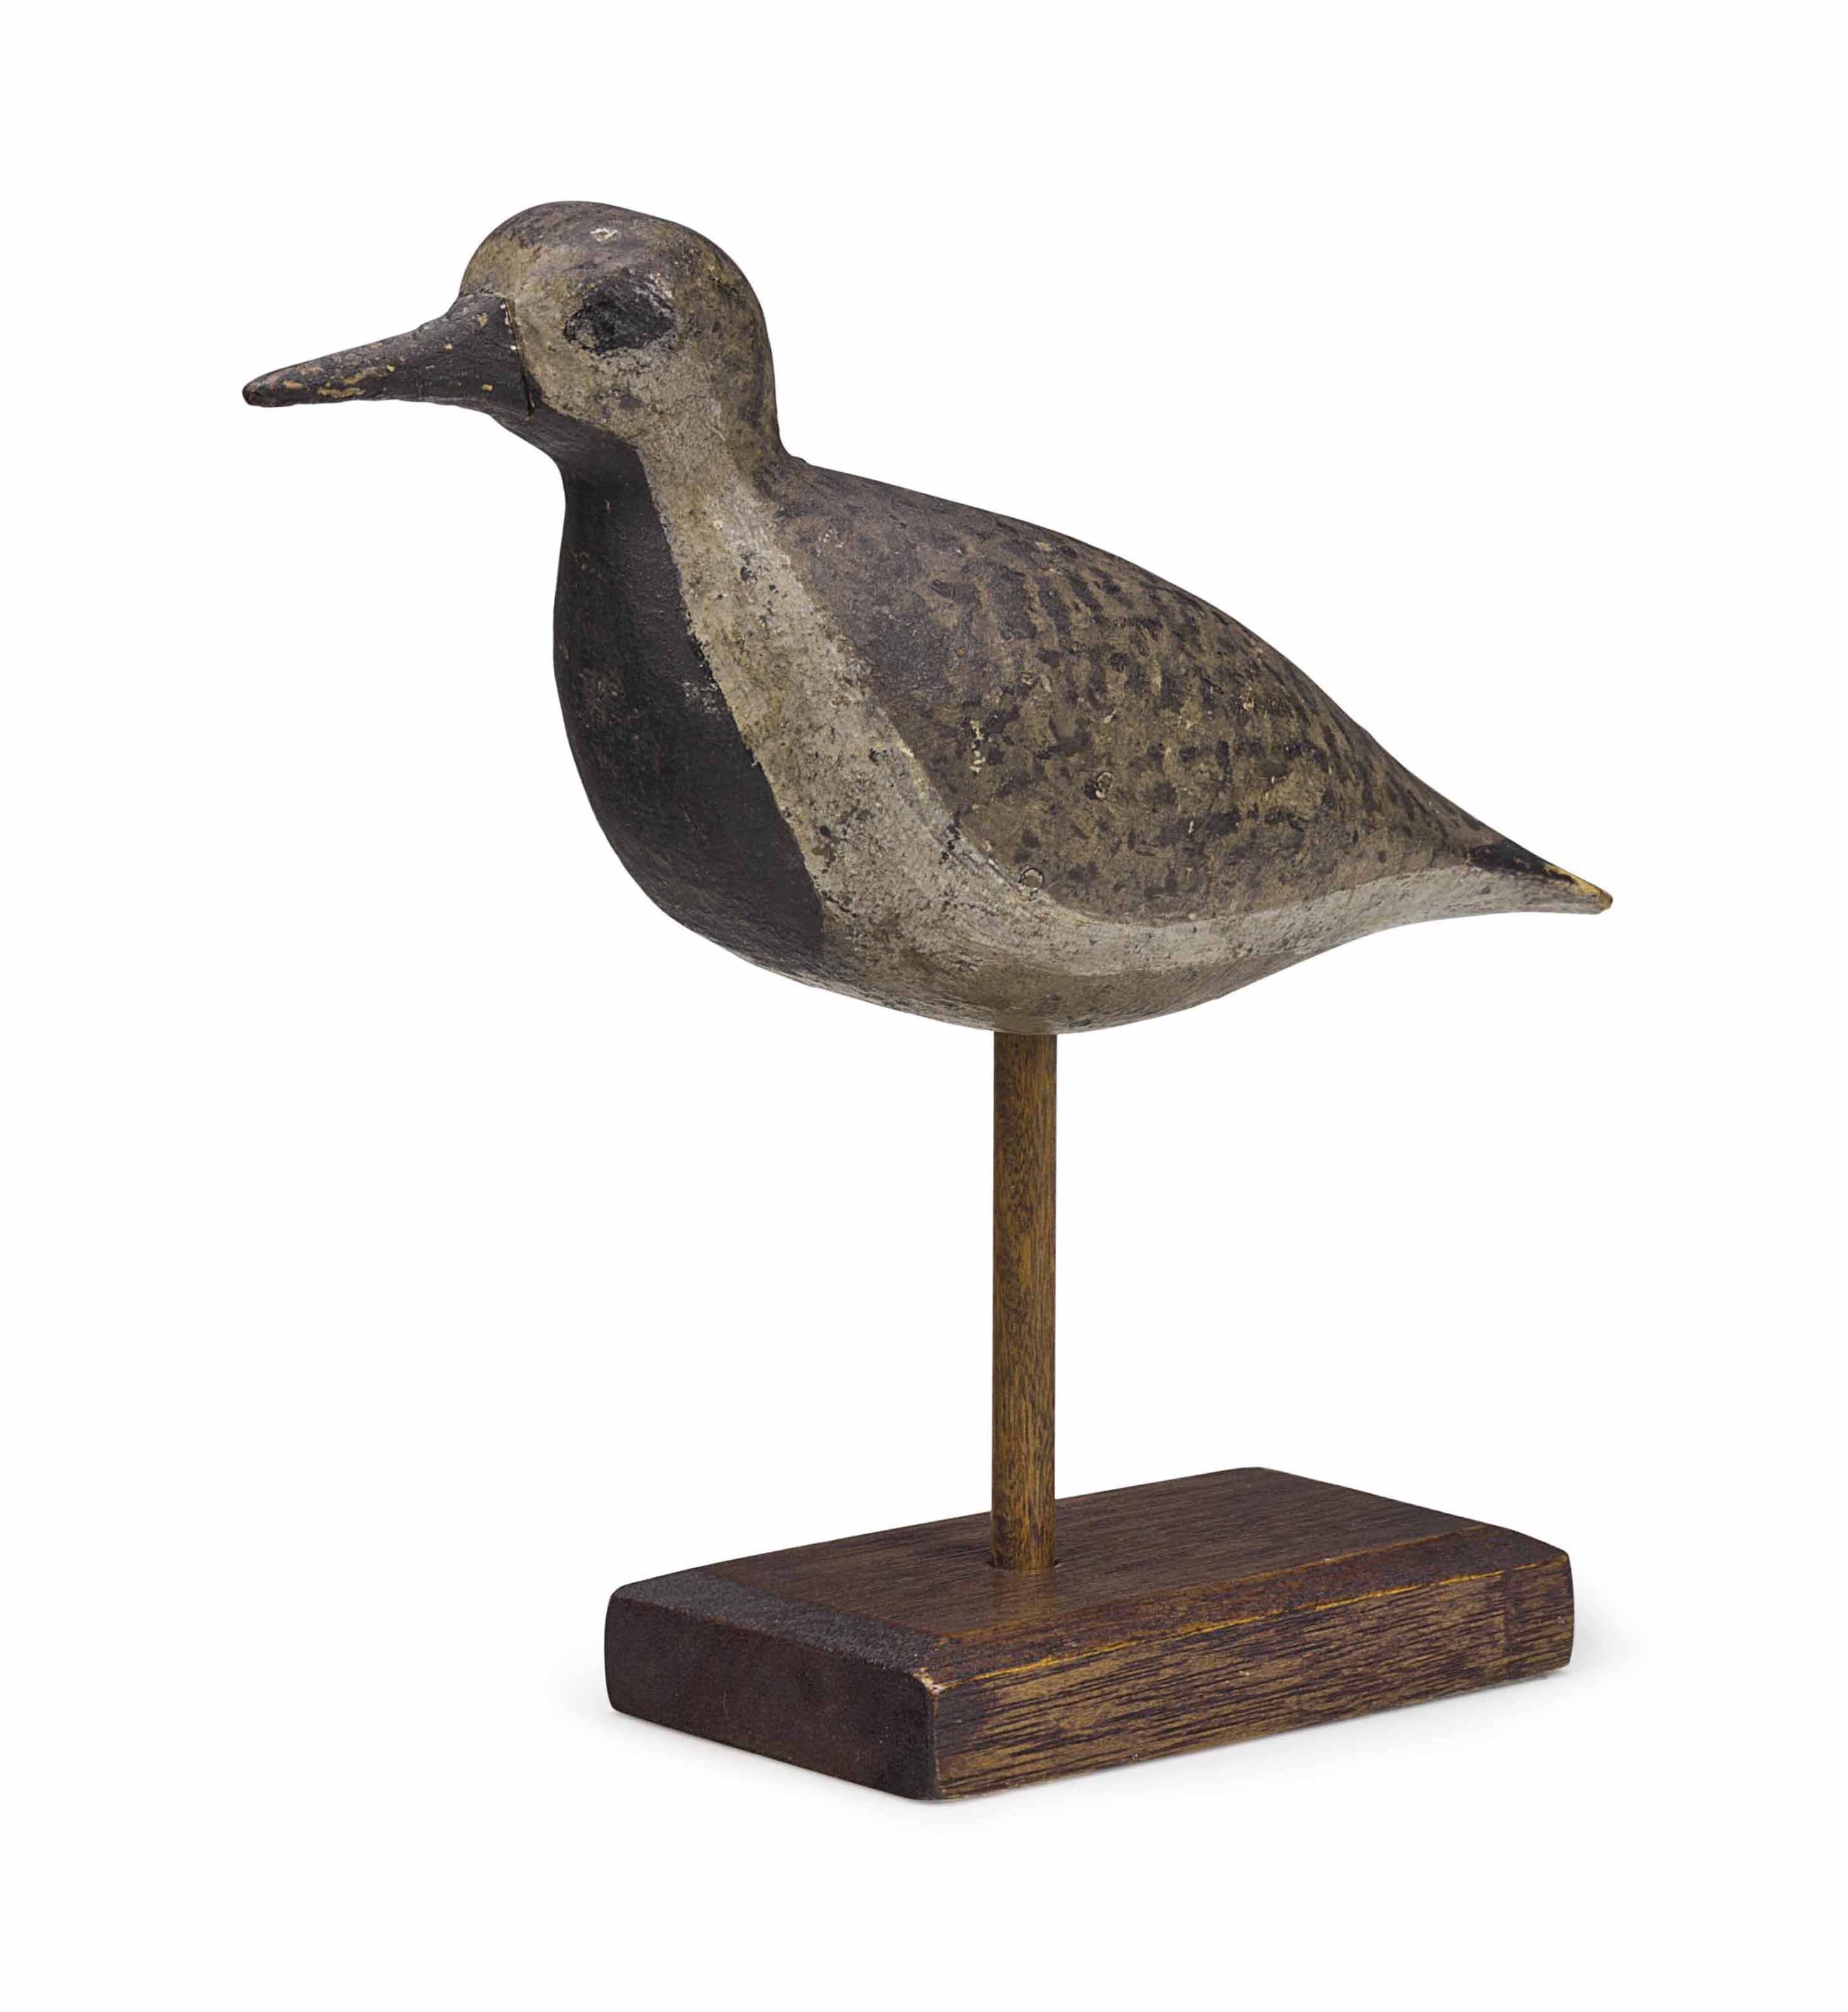 A BLACK-BELLIED PLOVER